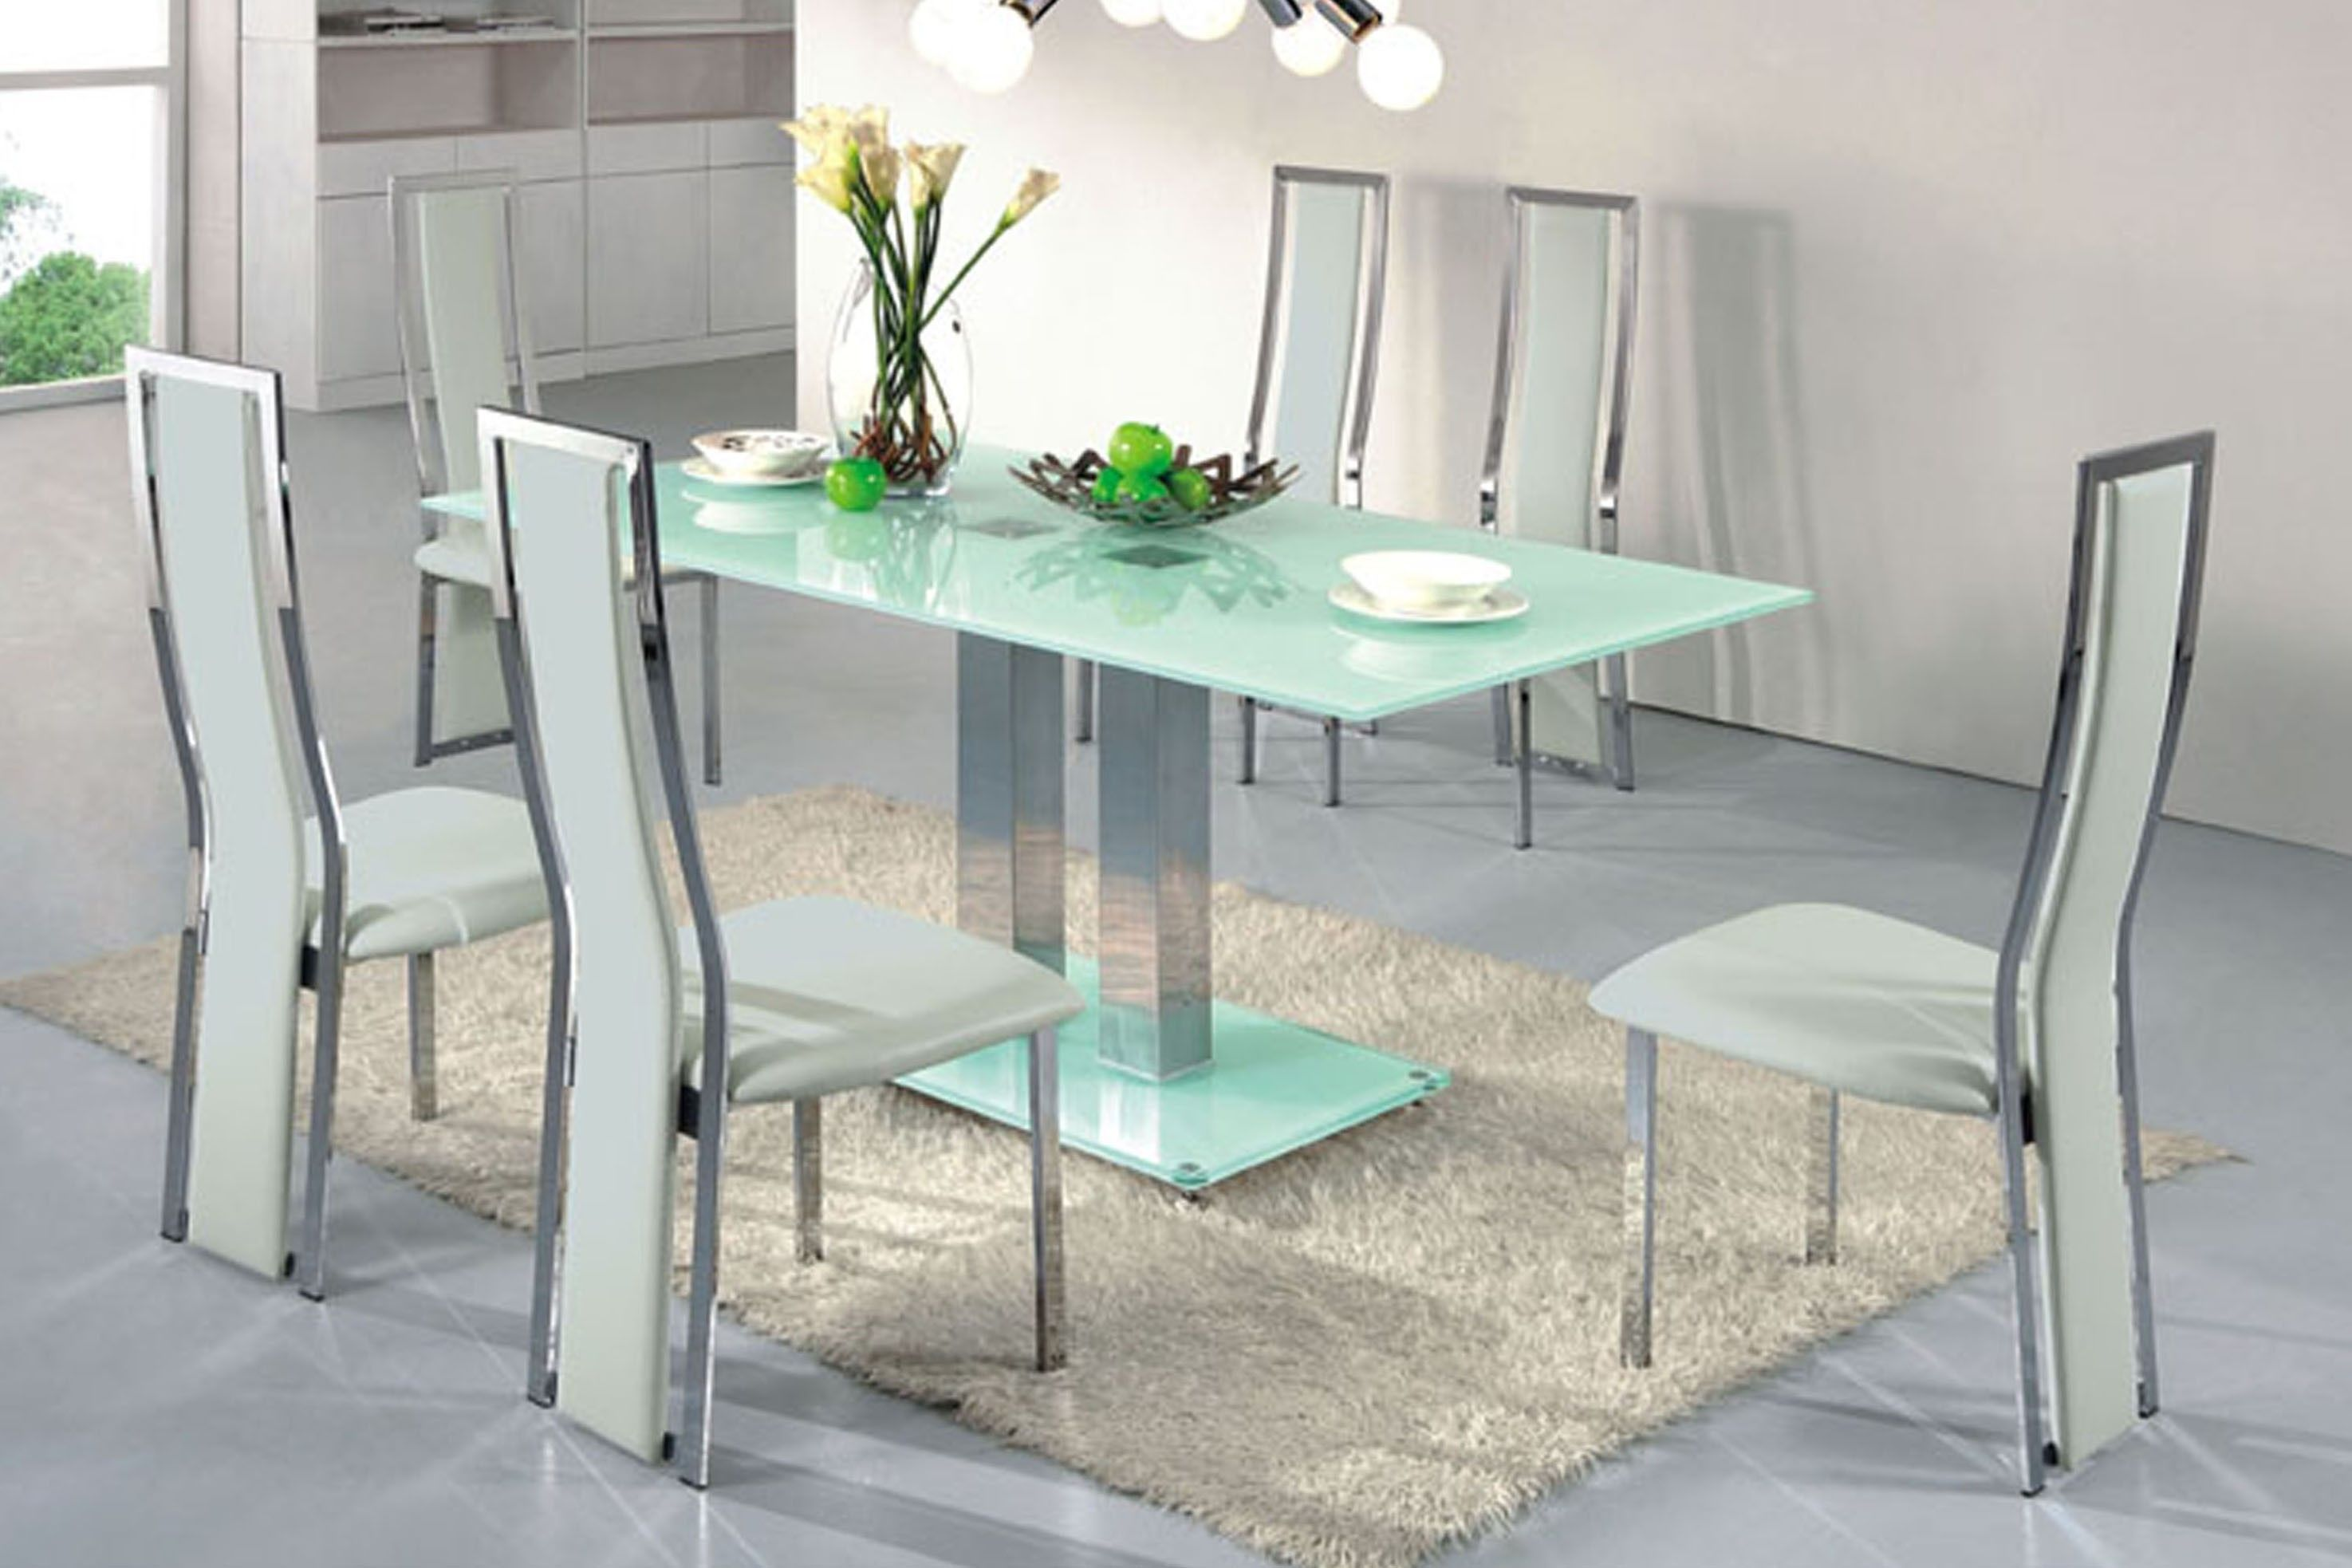 Modern Espresso Dining Room Table  Go To Chinesefurnitureshop New Extendable Glass Dining Room Table Design Decoration